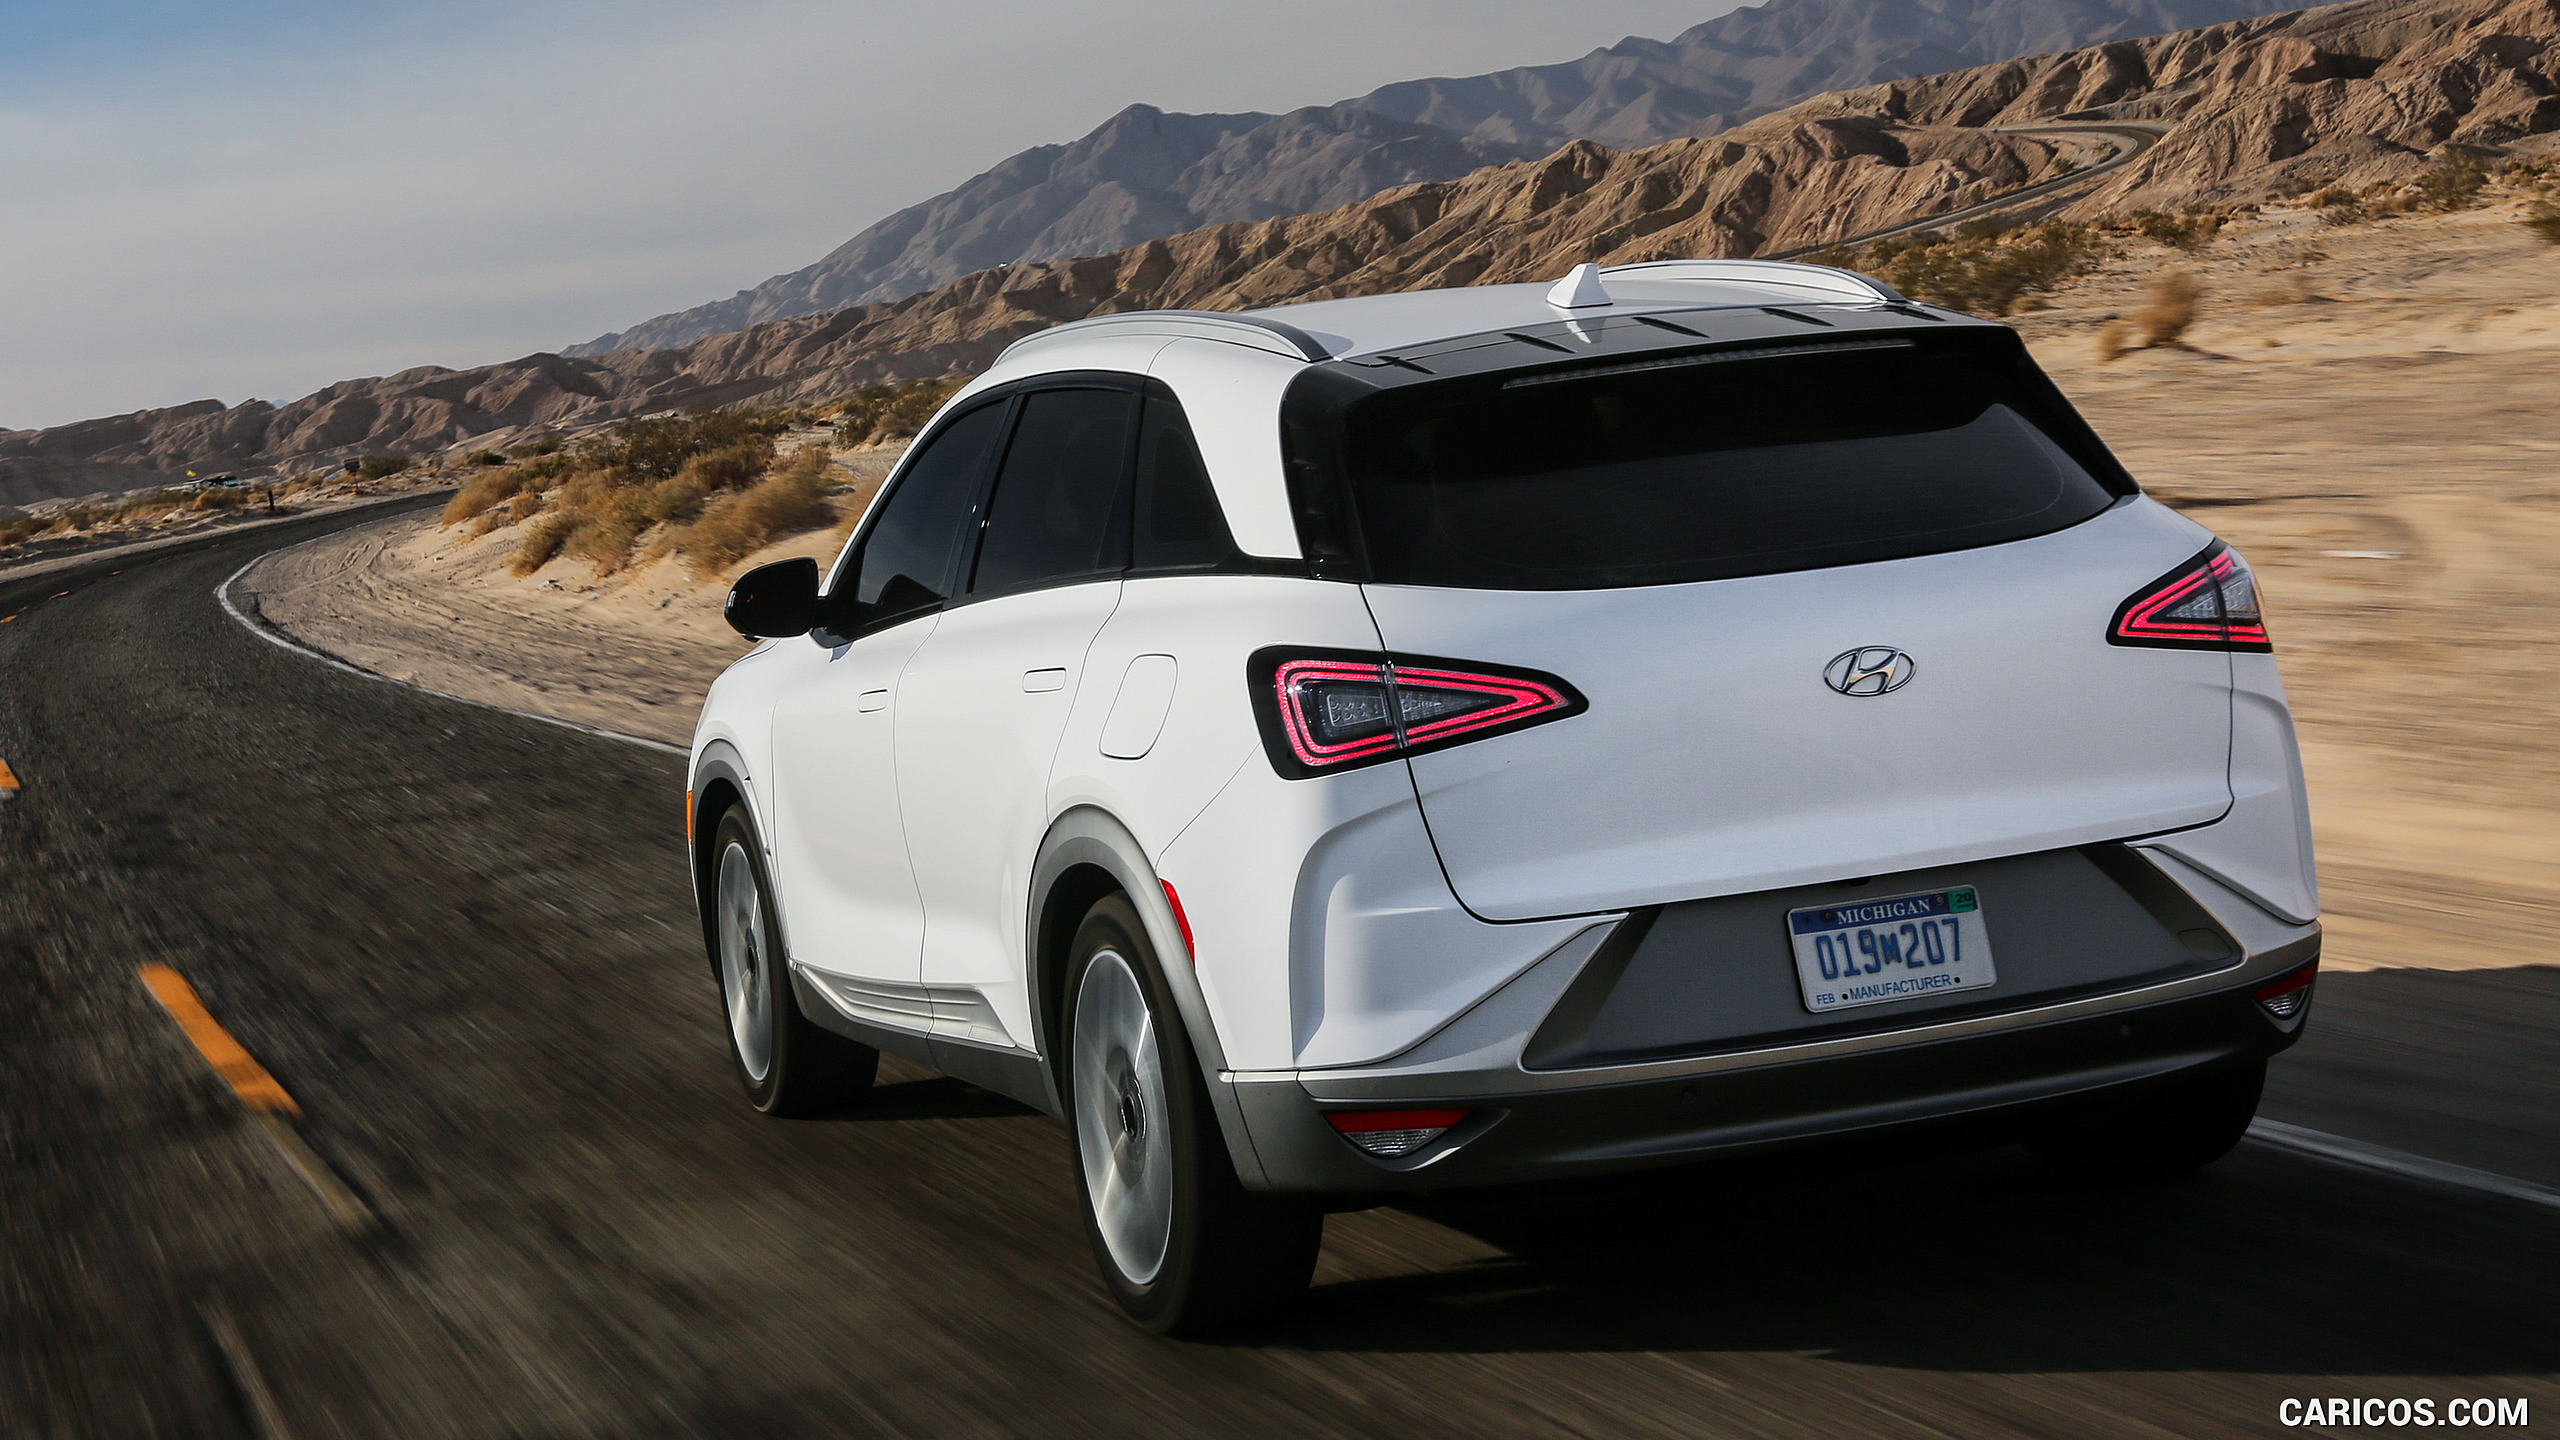 2019 Hyundai NEXO FCEV   Rear Three Quarter HD Wallpaper 8 2560x1440